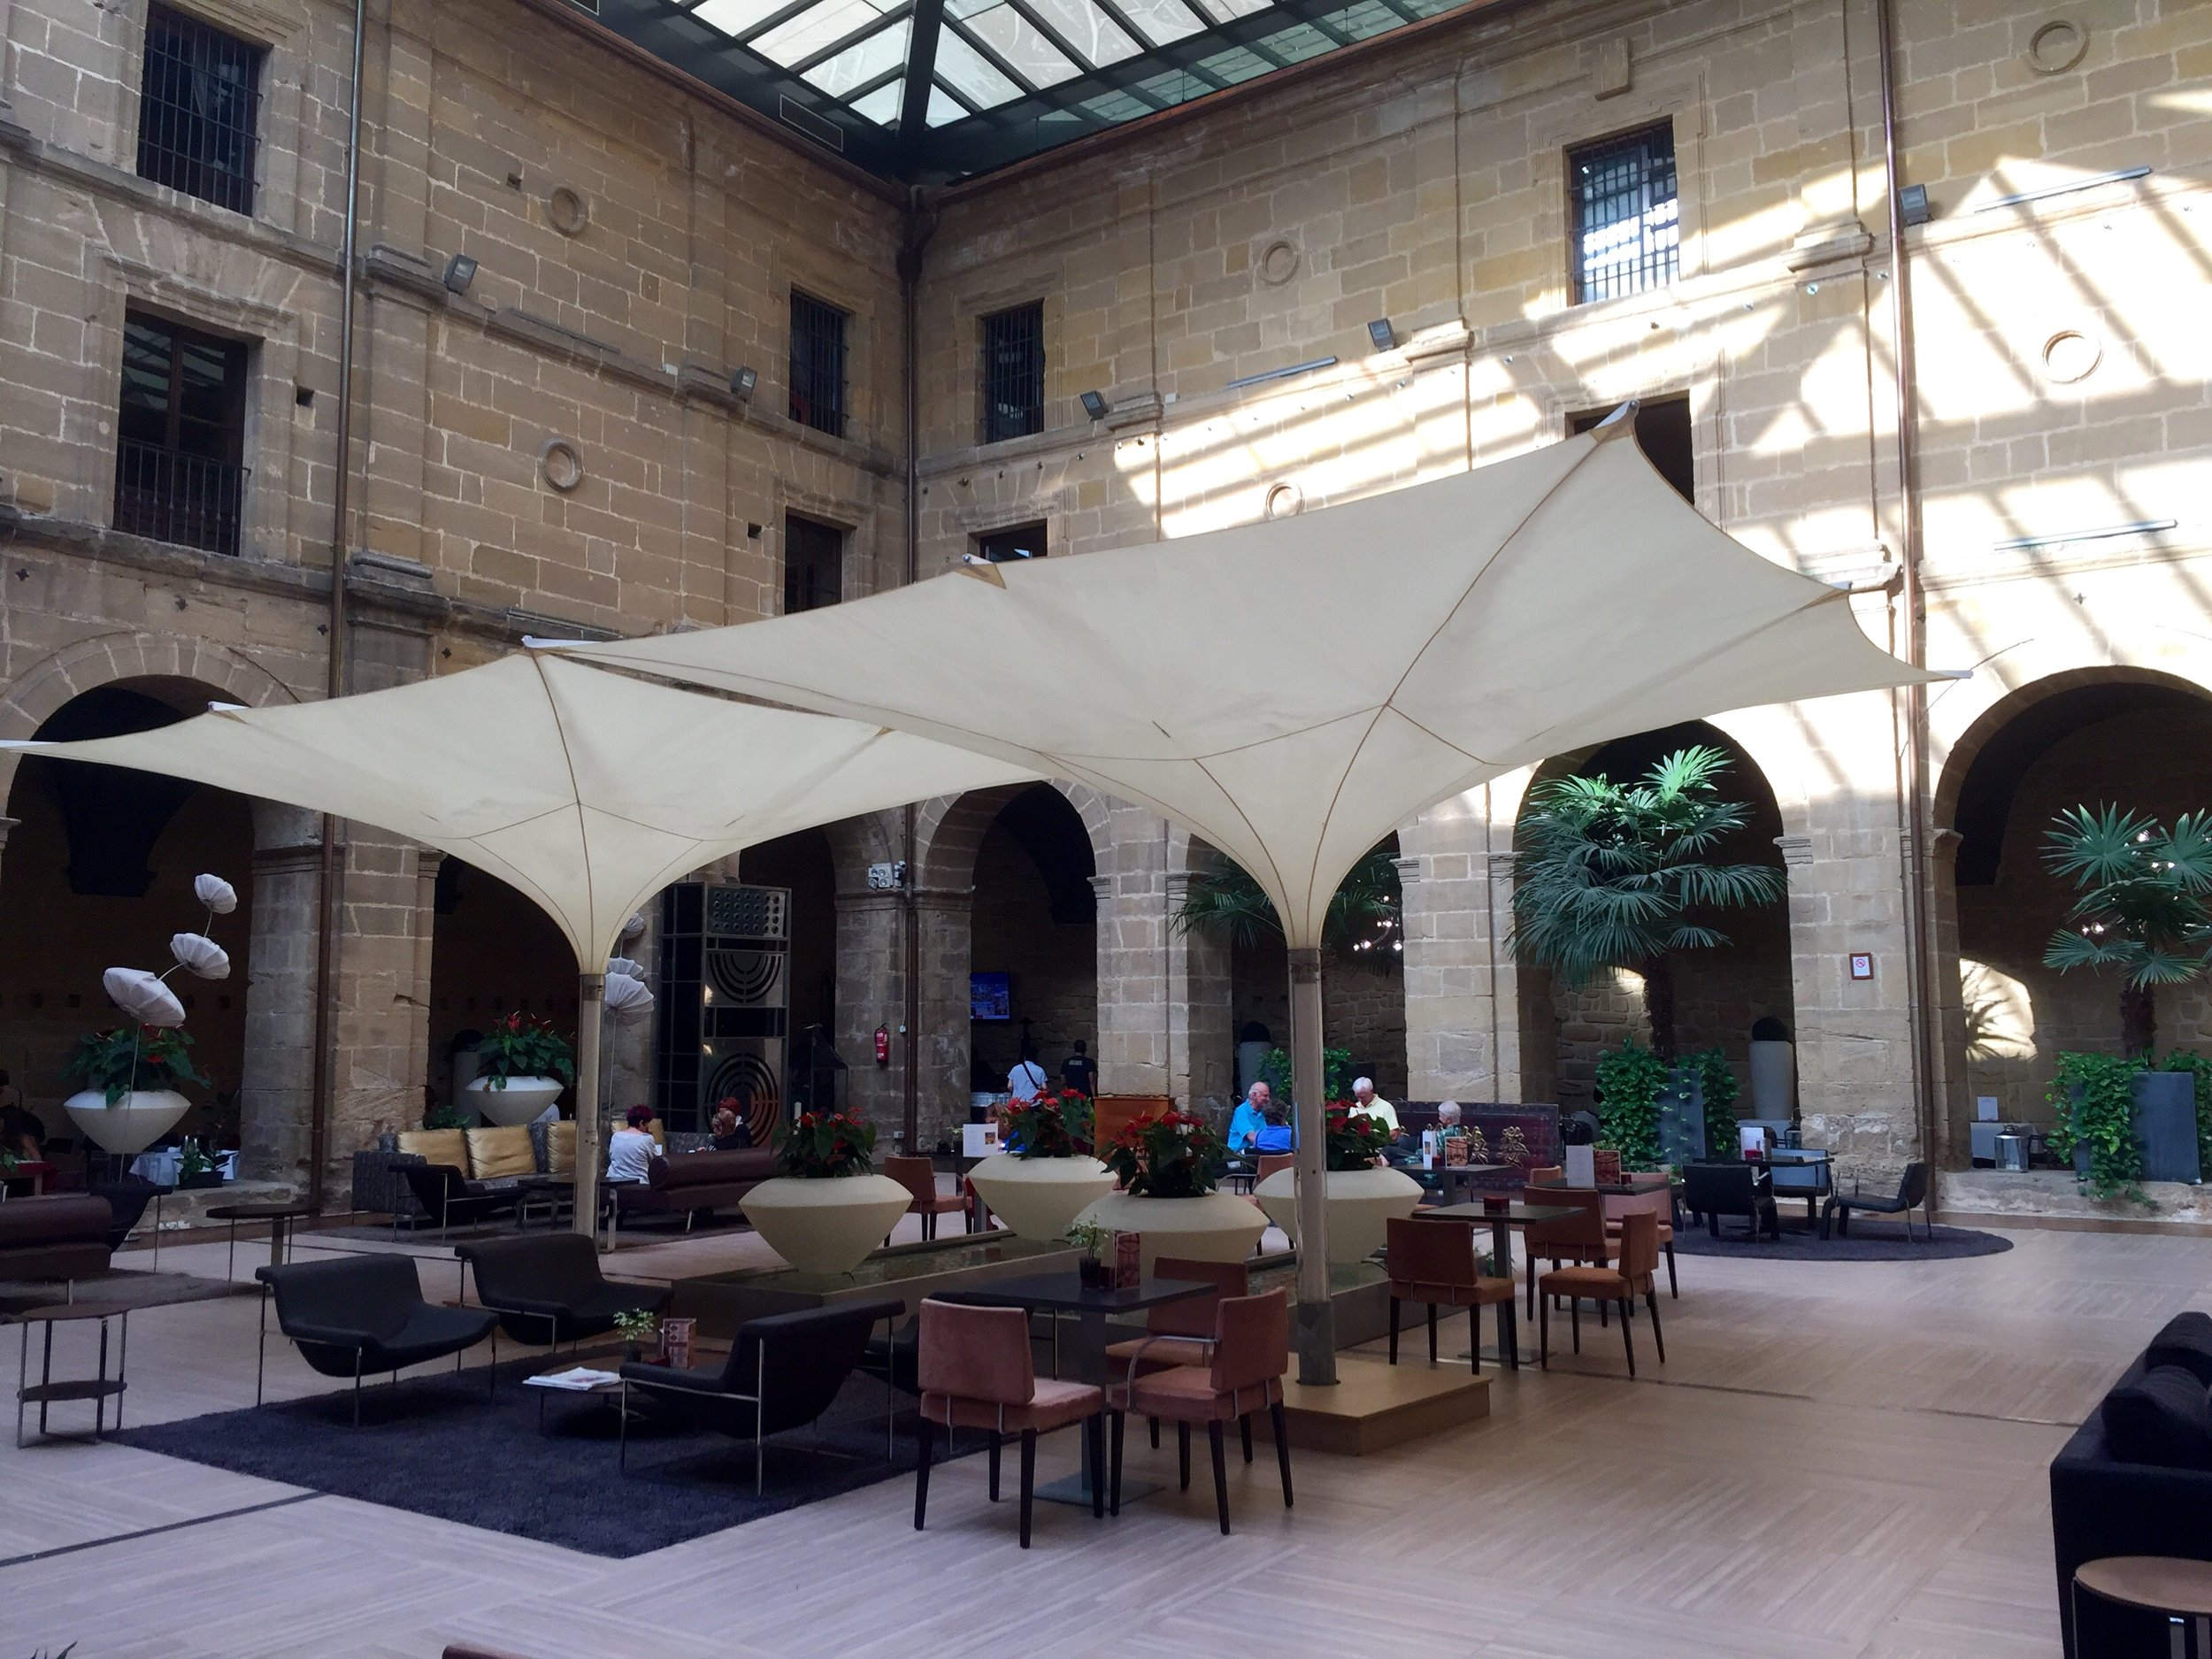 Center courtyard of Los Agustinos, our hotel in Haro, Rioja.